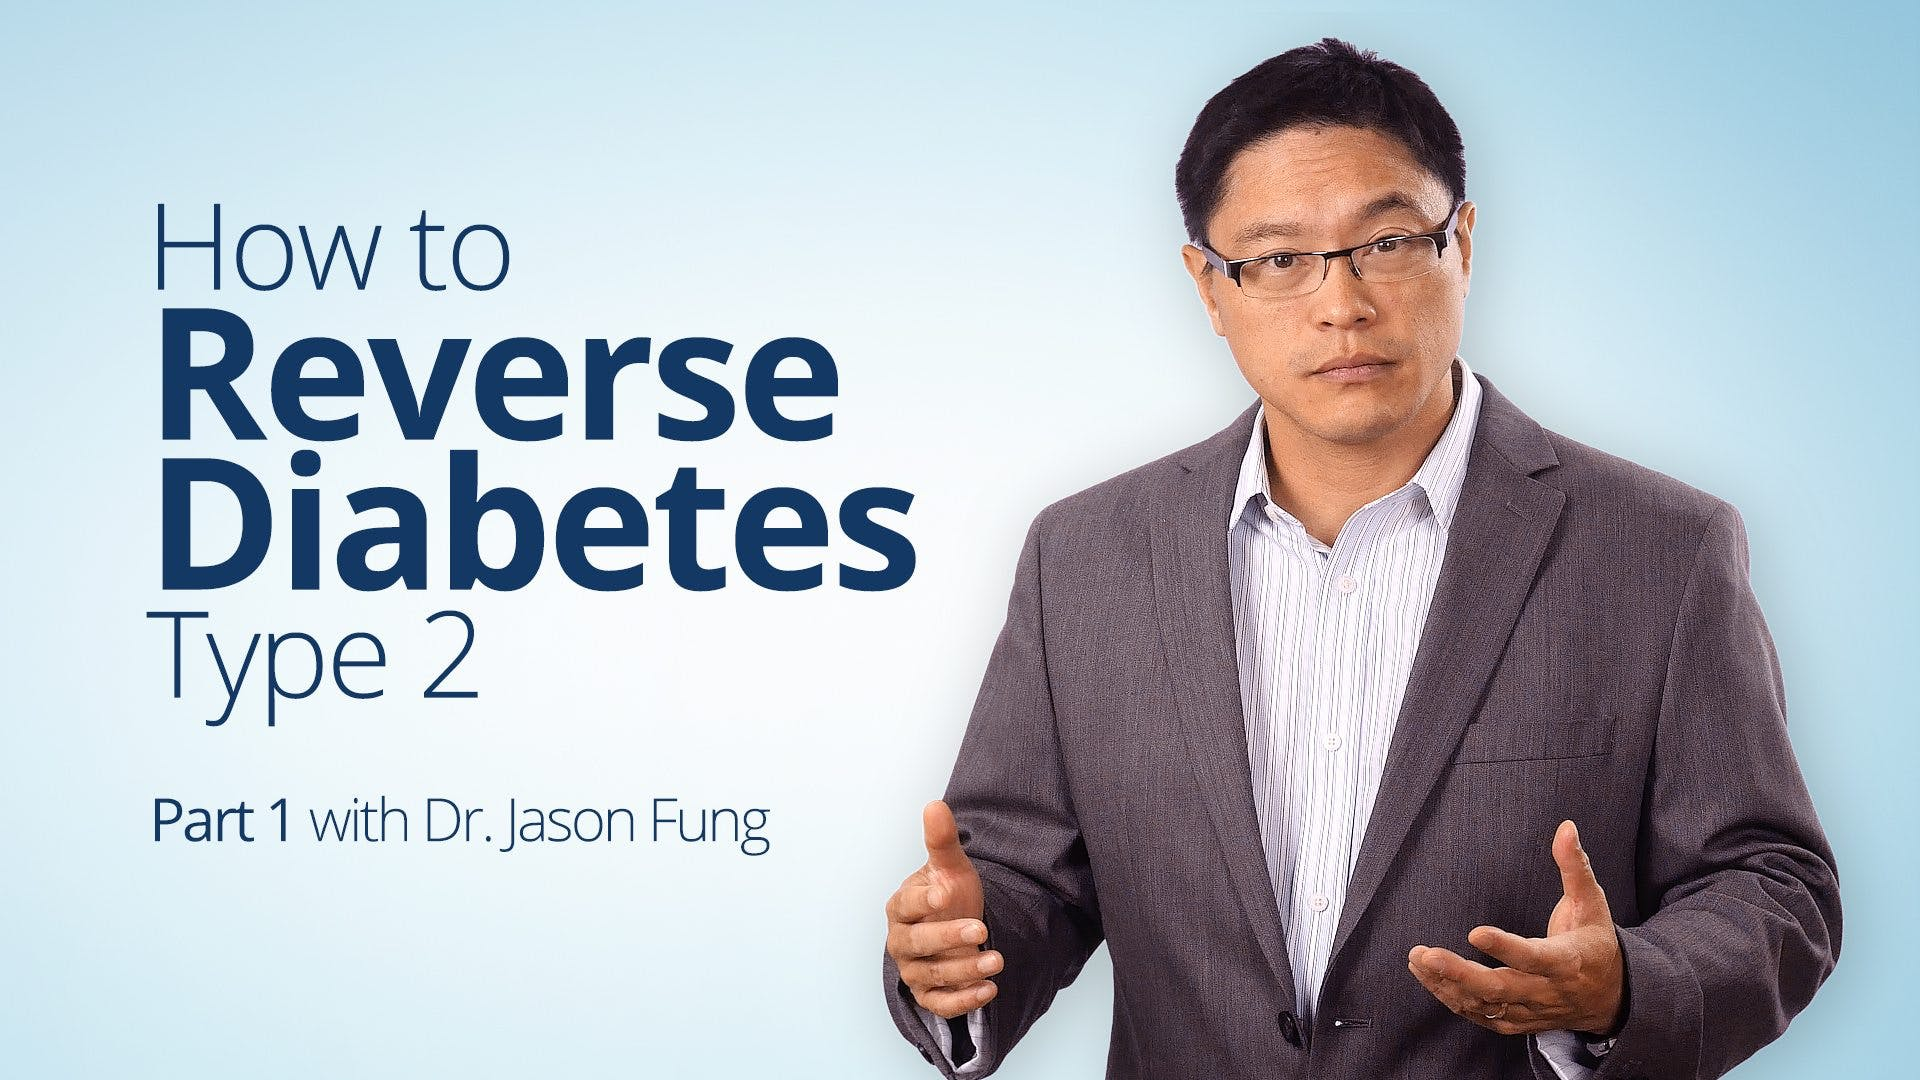 How to Reverse Diabetes Type 2